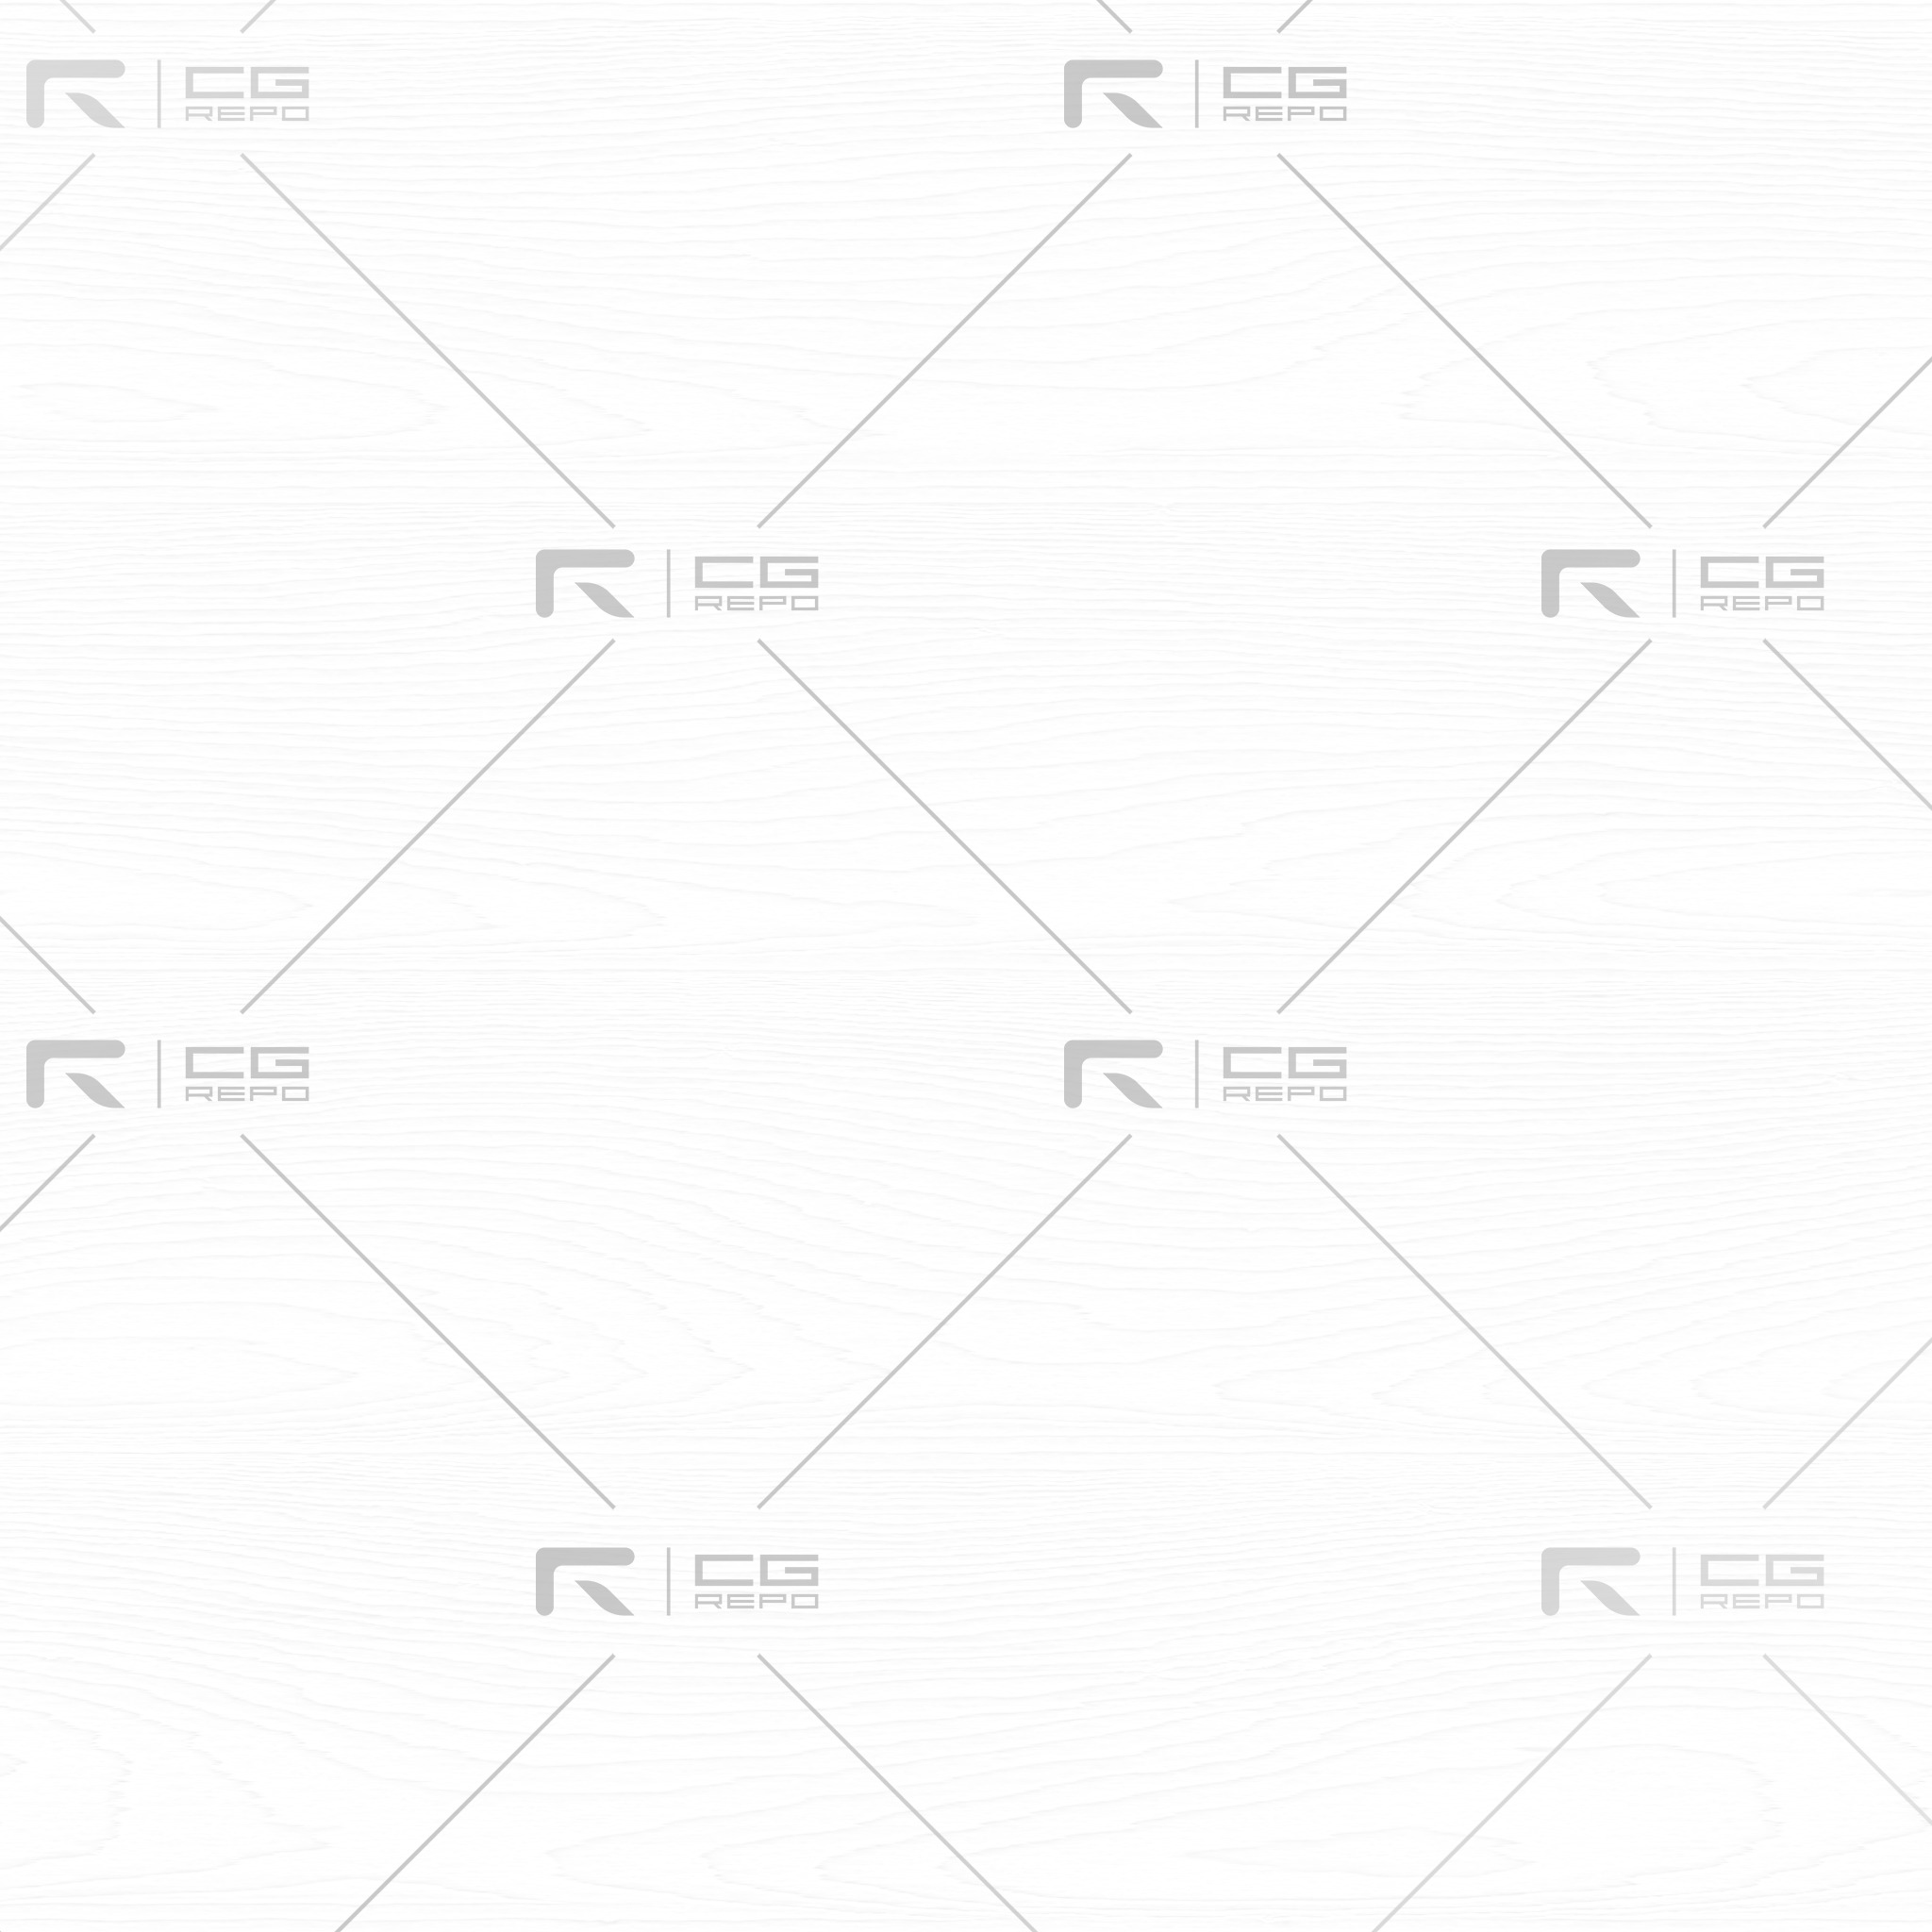 Oak - Smoked Grey - Flat Sawn Ambient Occlusion Texture